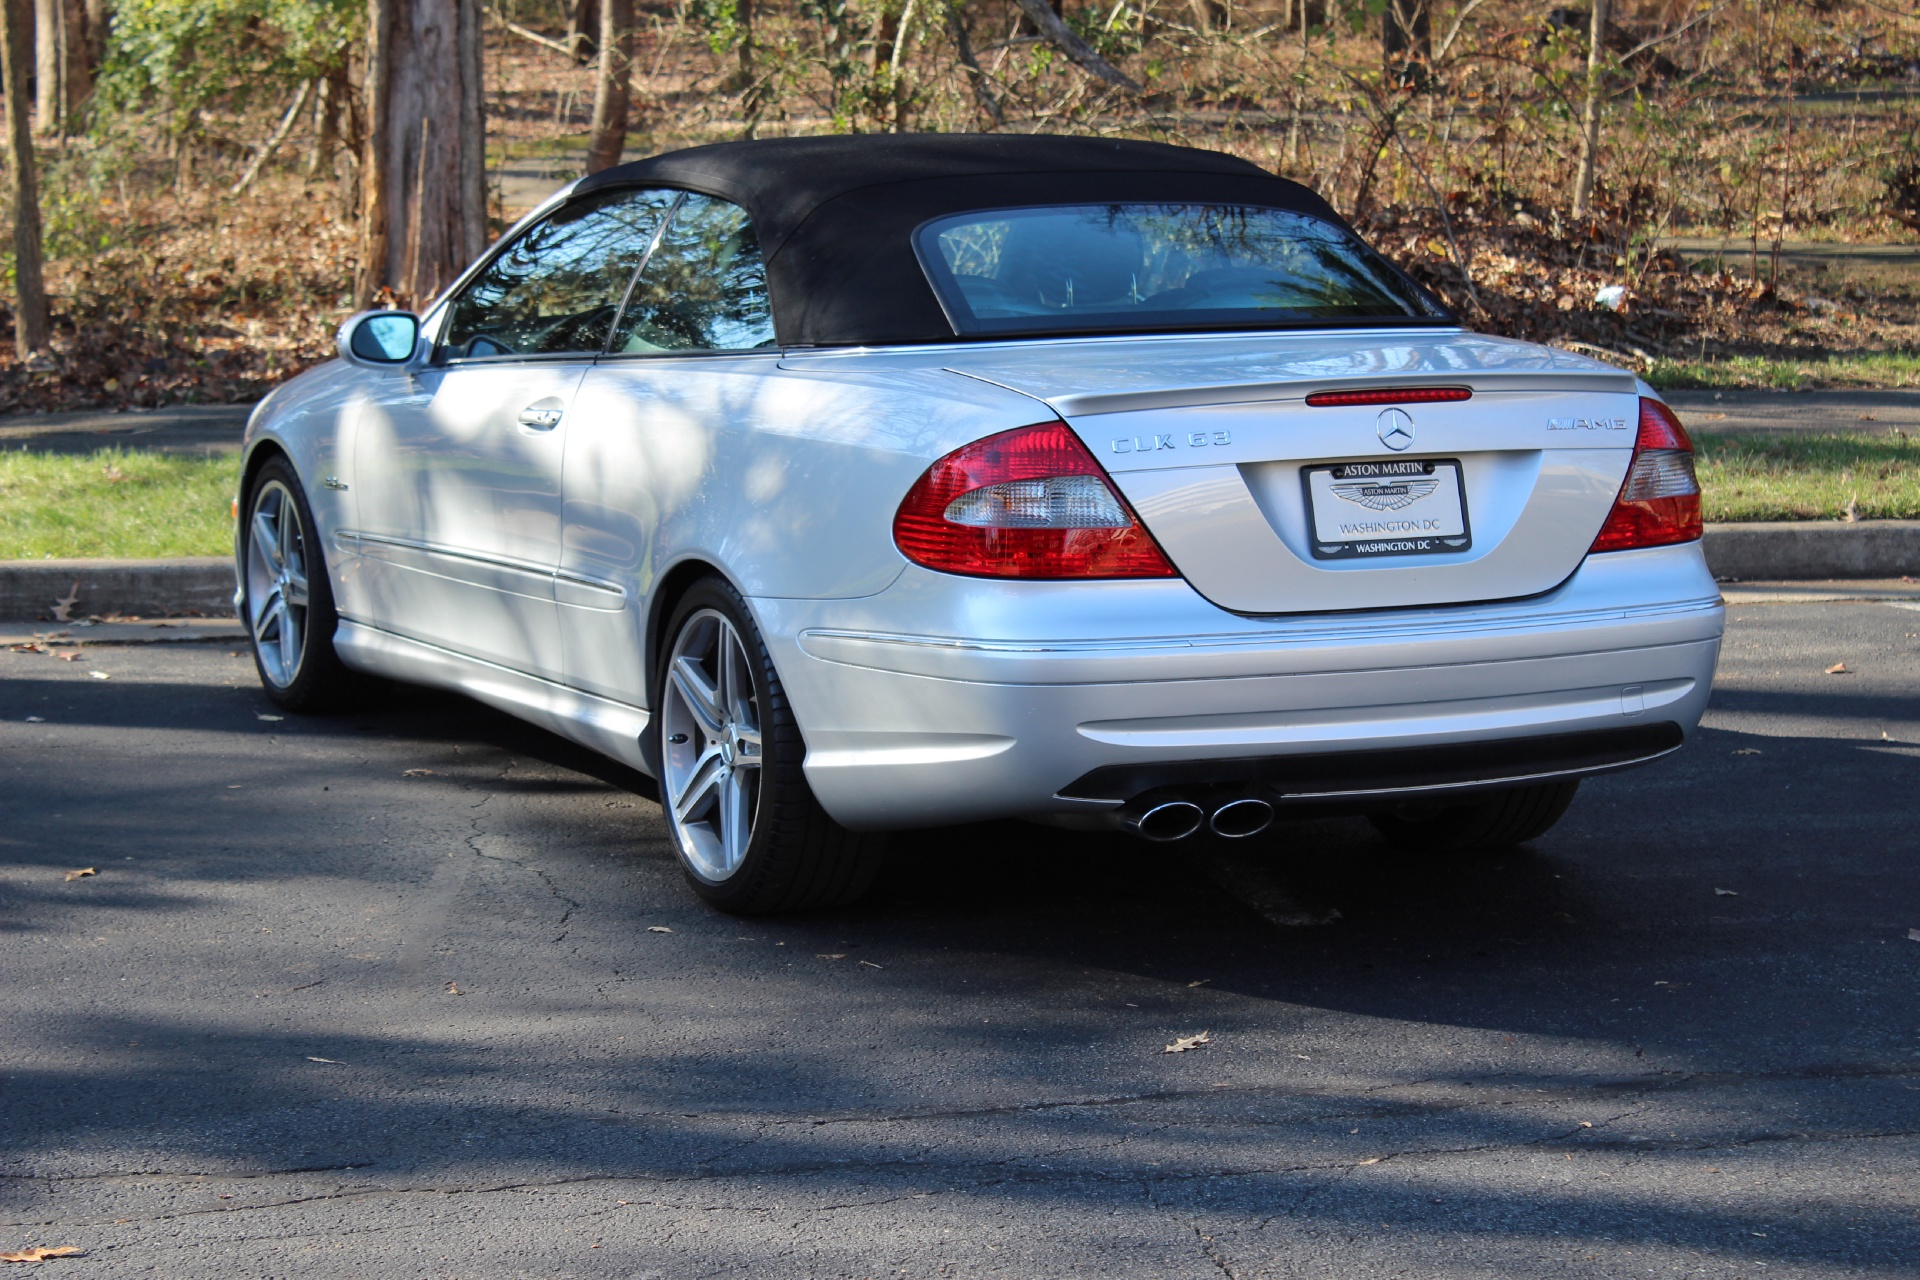 2007 mercedes benz clk63 amg clk63 amg stock p084288 for for Mercedes benz lynchburg va